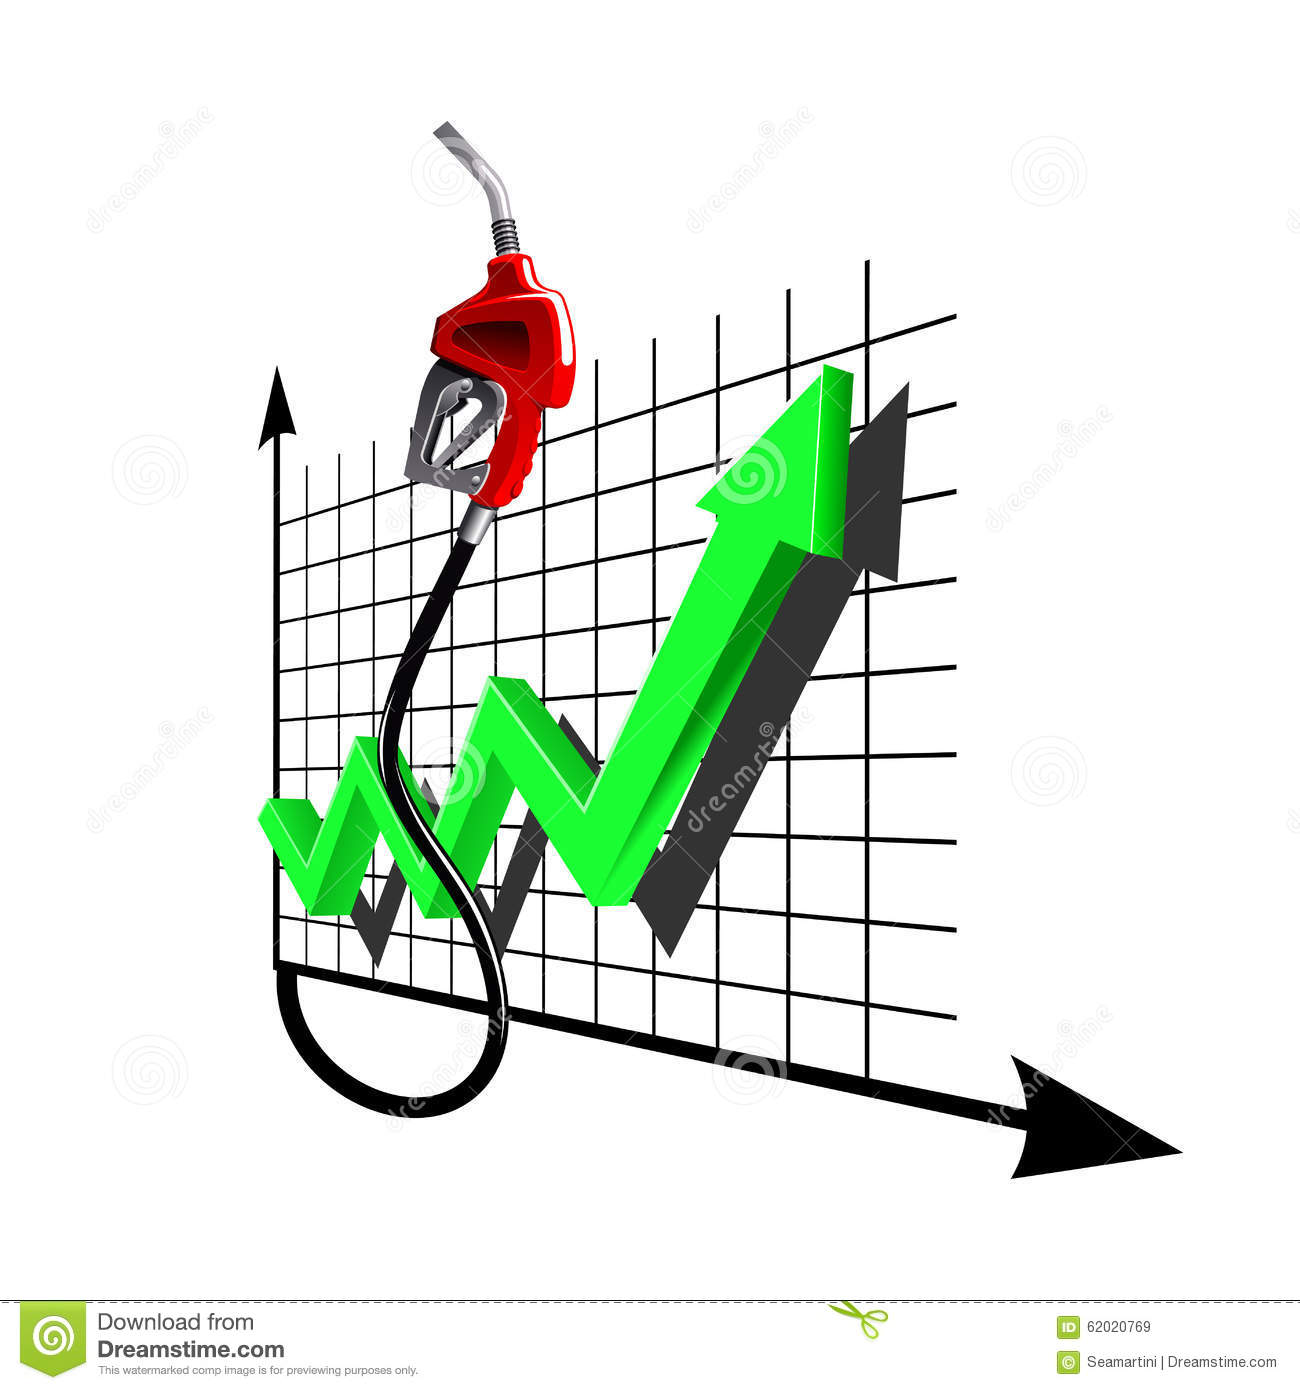 chart growth fuel prices gas pump nozzle red gasoline line green arrow indicates increasing dynamics oil industry 62020769 chart of growth fuel prices with gas pump nozzle stock vector